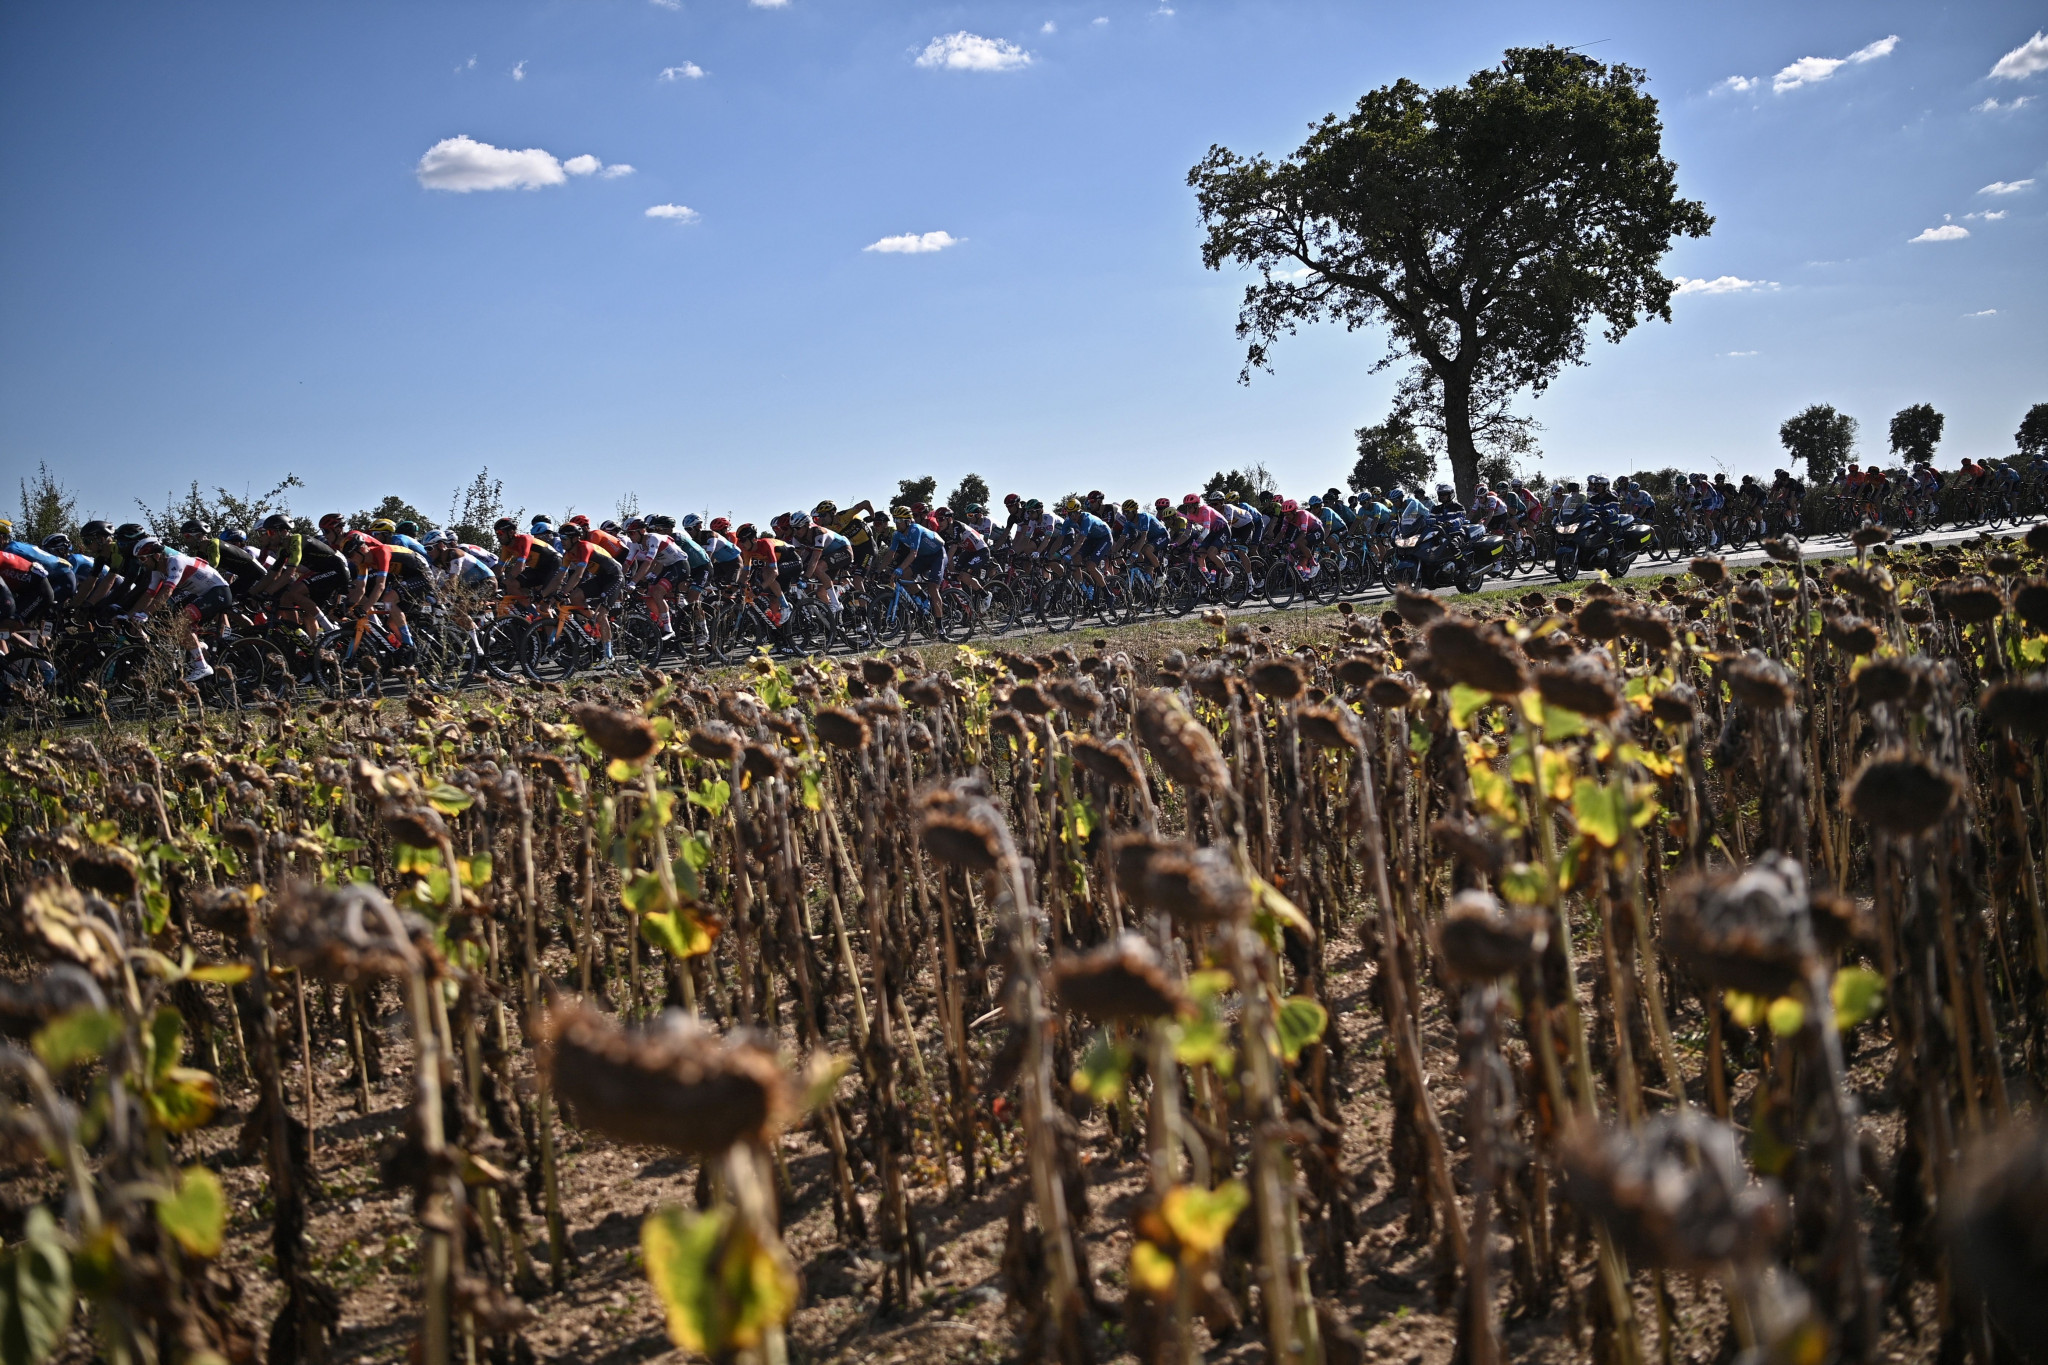 The sunflowers are normally blooming in the summer when the Tour de France is held in July and August, but in September the fields are brown rather than yellow ©Getty Images